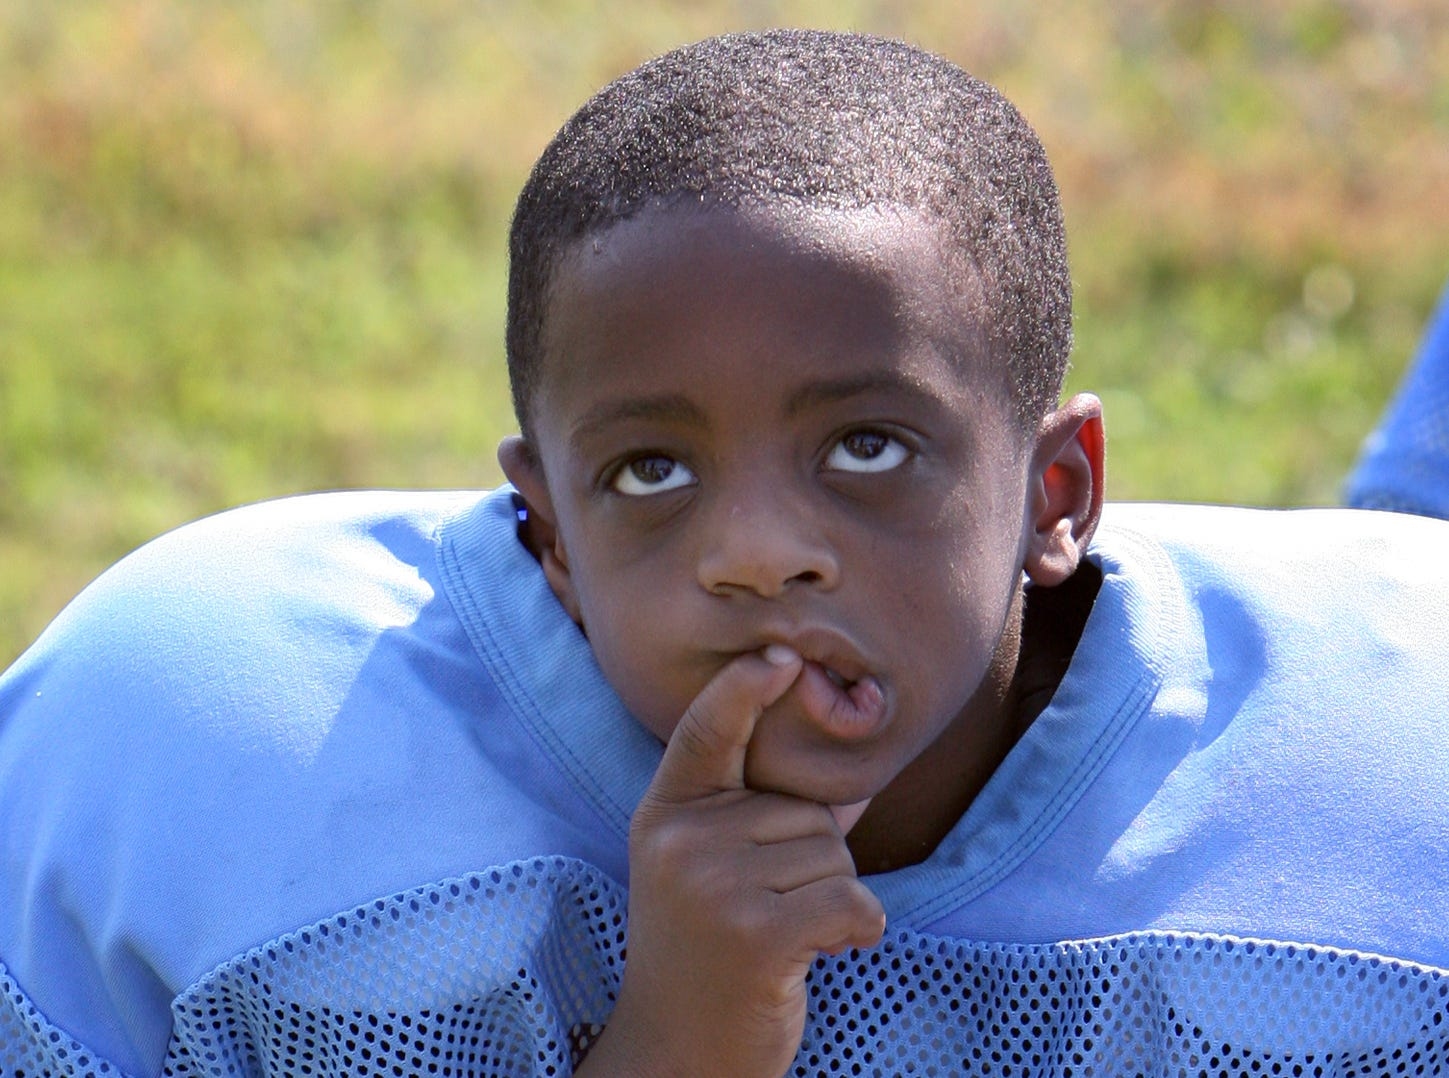 The Salvation Army's Tarheel's running back SaQuan Cotton listens intently to his coaches instructions during the game's halftime.